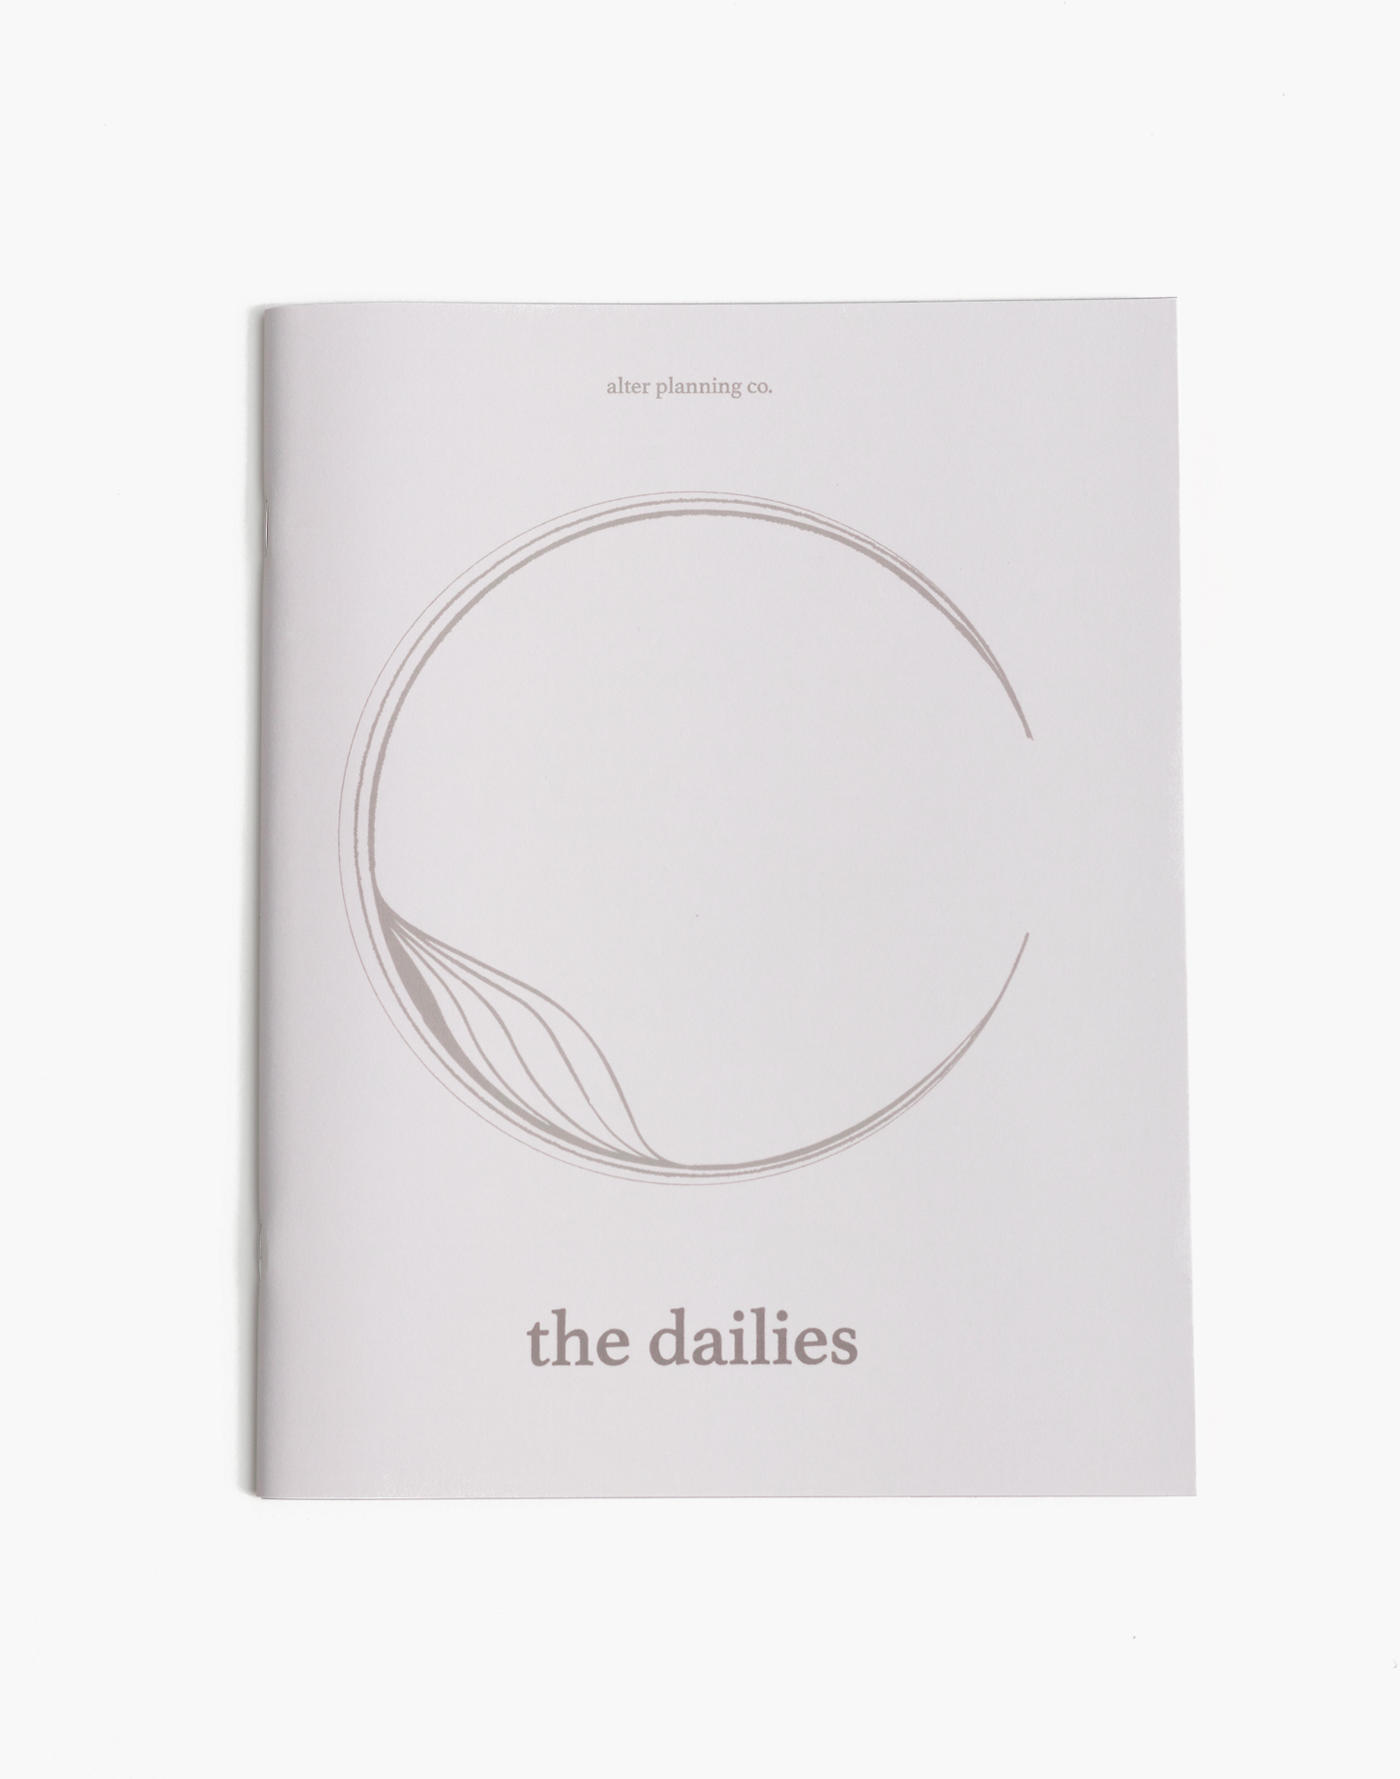 Madewell alter planning co. The Dailies Planner